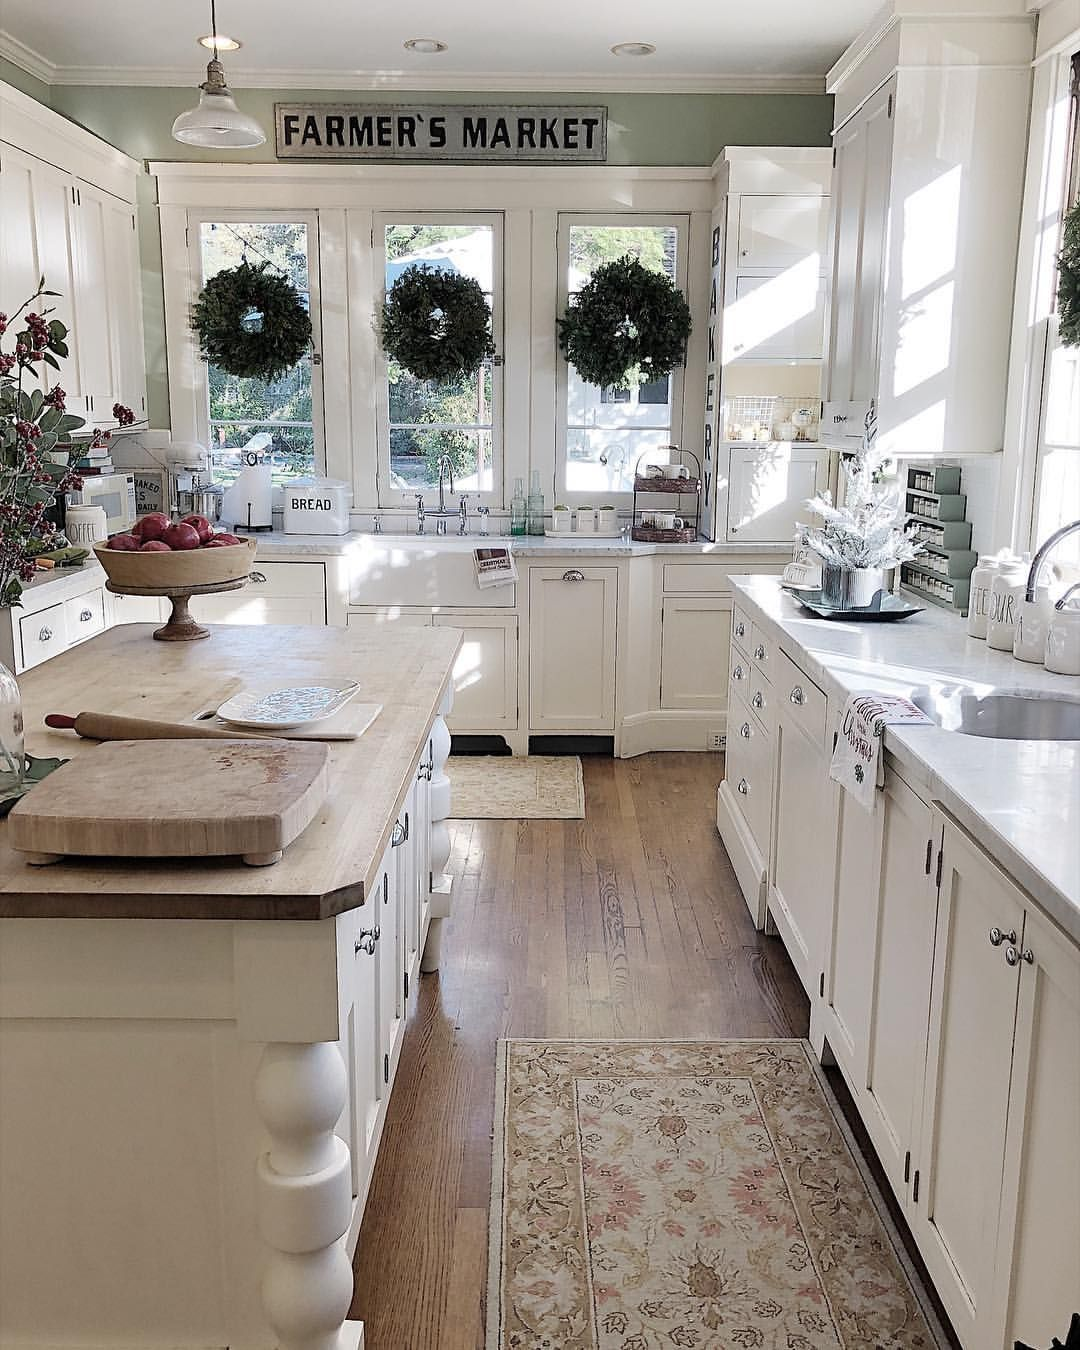 Lobe The Three Wreaths On Large Window And Cozy Rugs Under Sinks Farmhouse Kitchen Cabinet Ideas Click Pic For Many